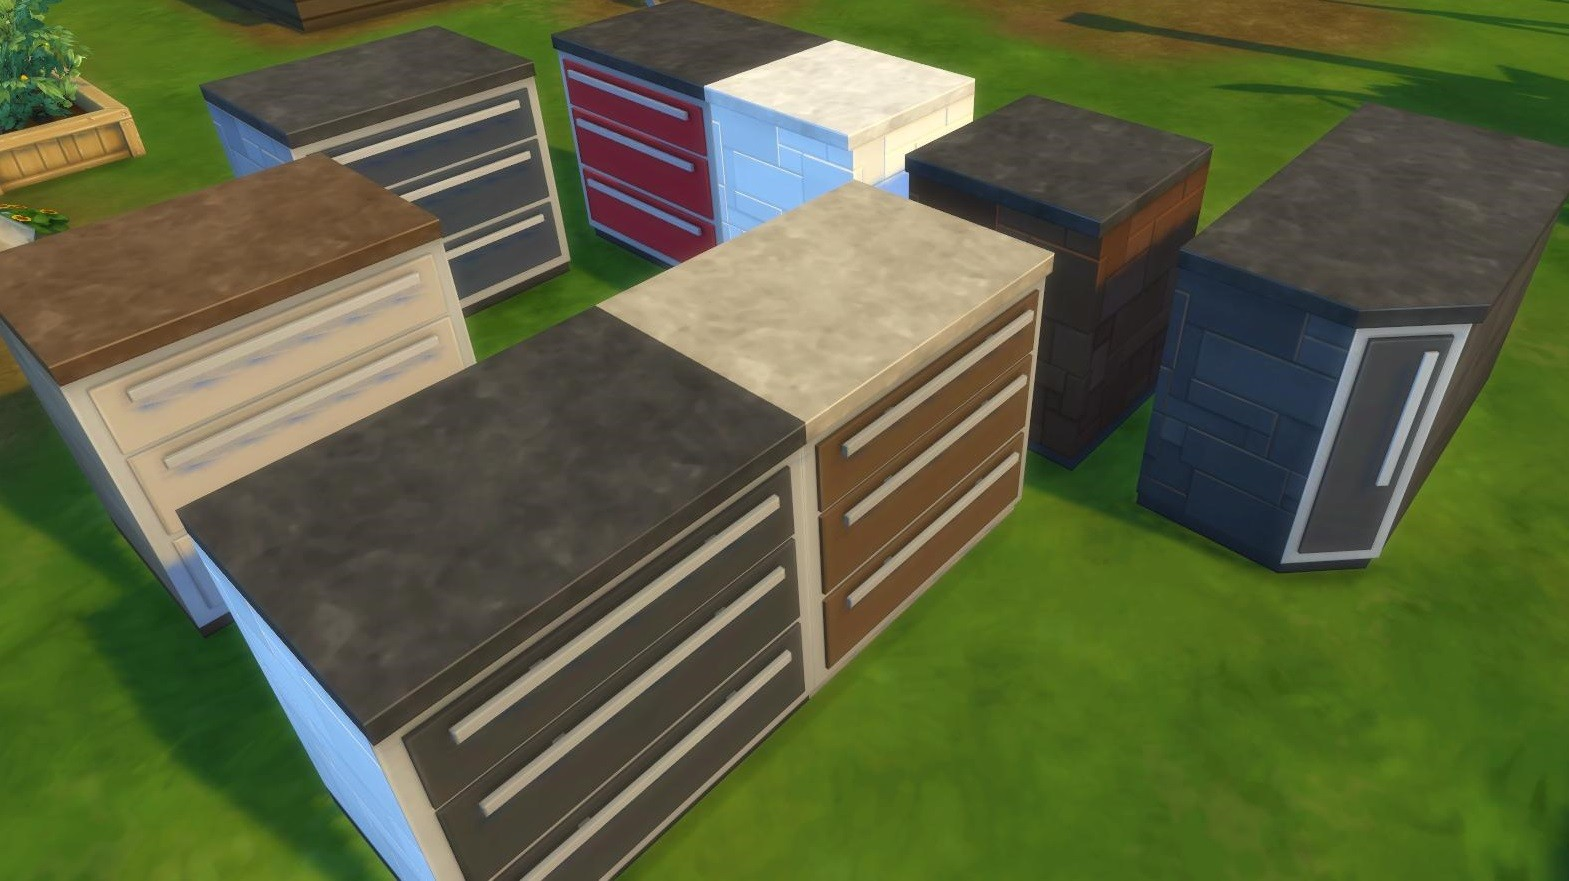 Sims 4 Ambiance Patio Meubles 07 Next Stage